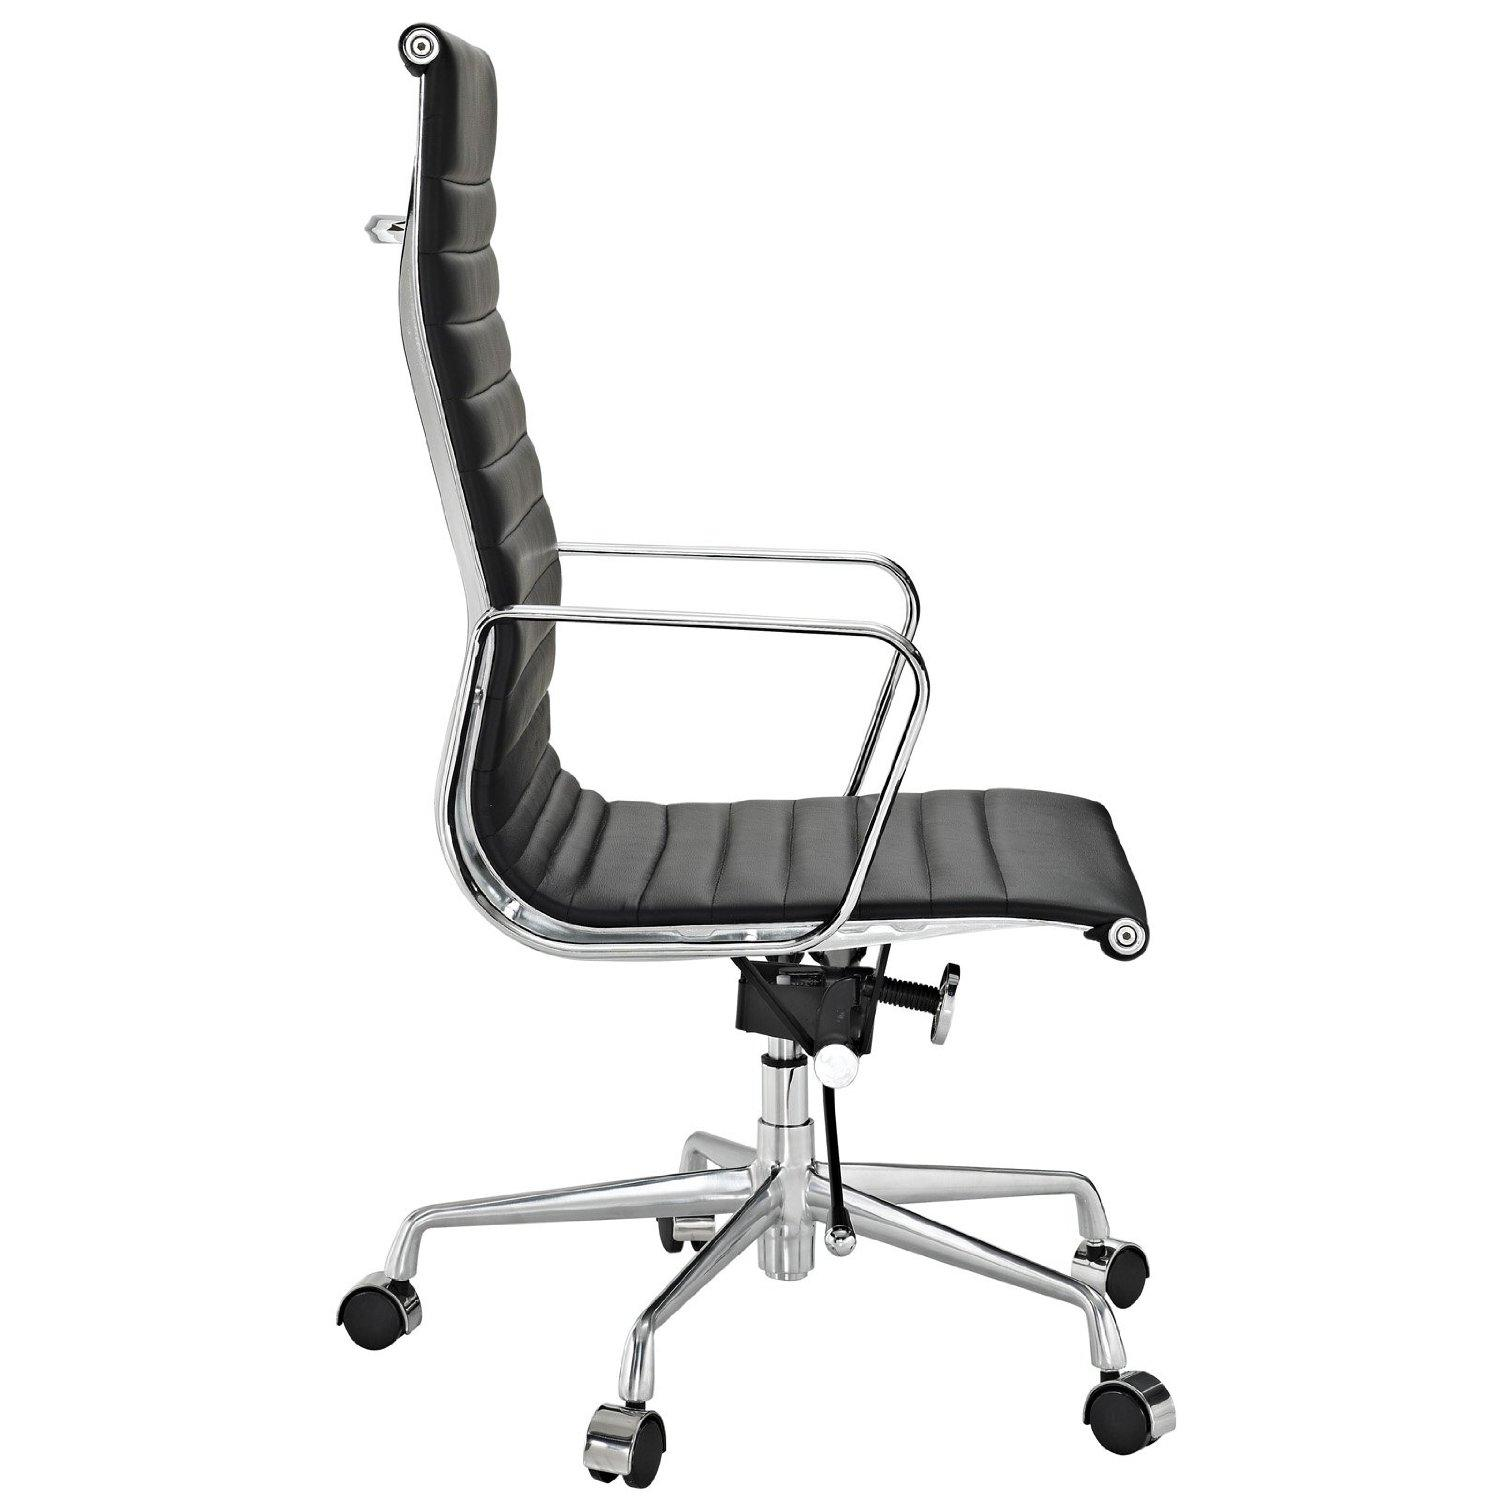 Medium back office chair - View Larger